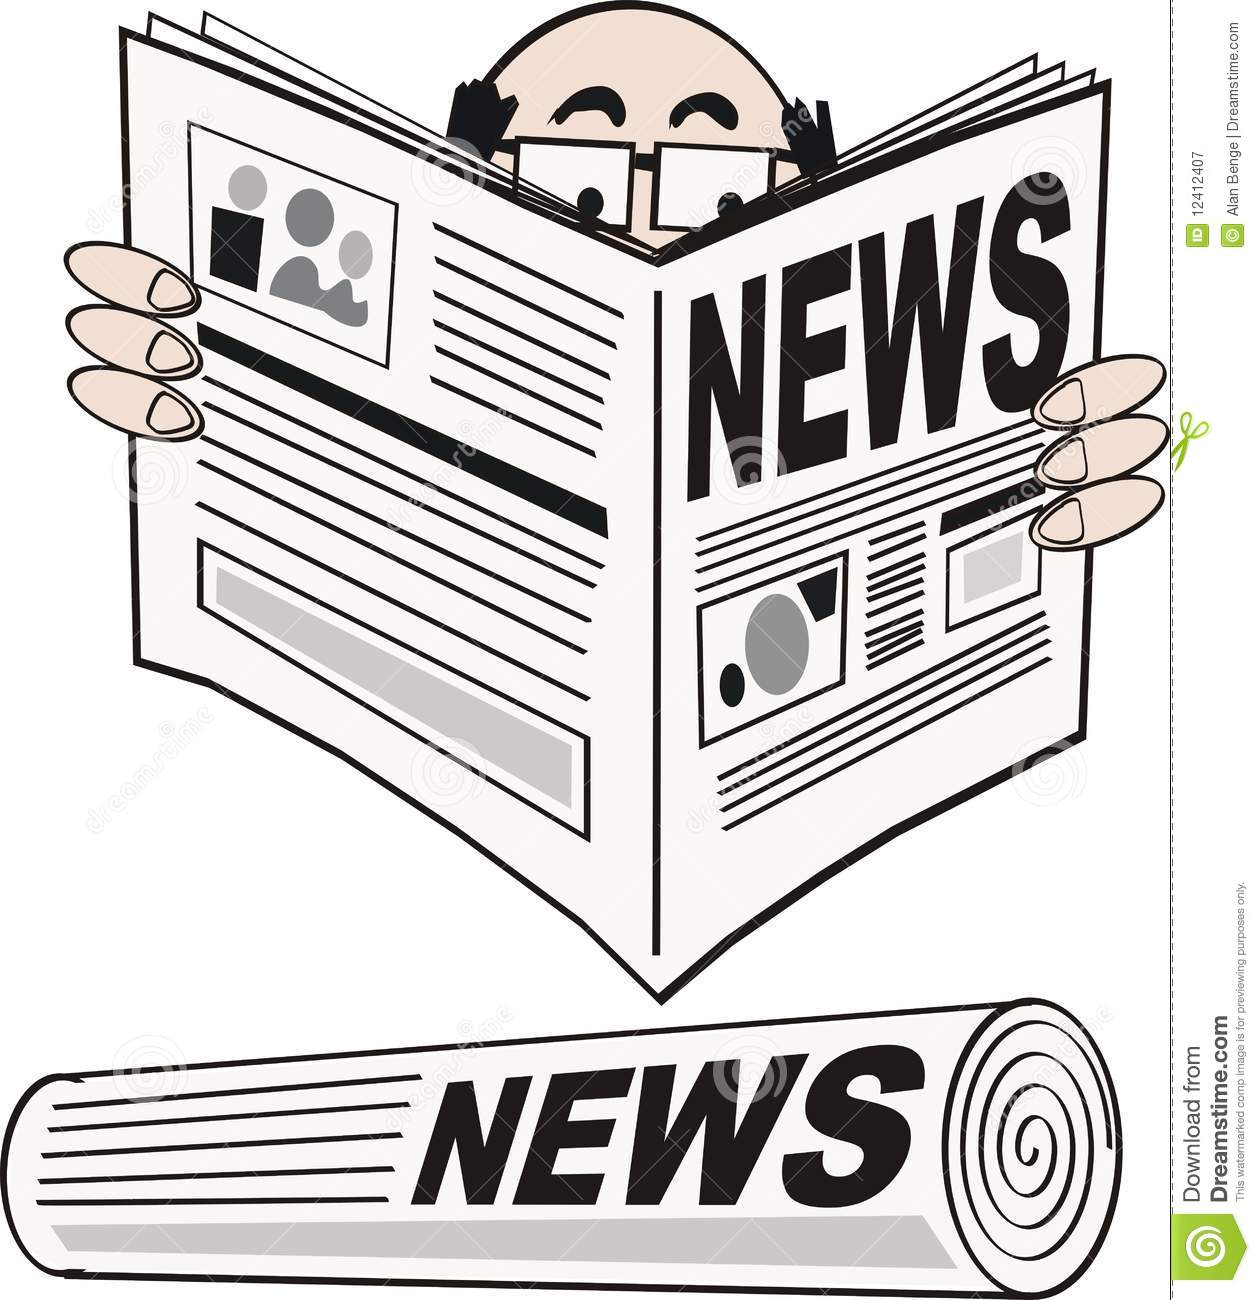 Newspaper Cartoon Royalty Free Stock Photography - Image: 12412407